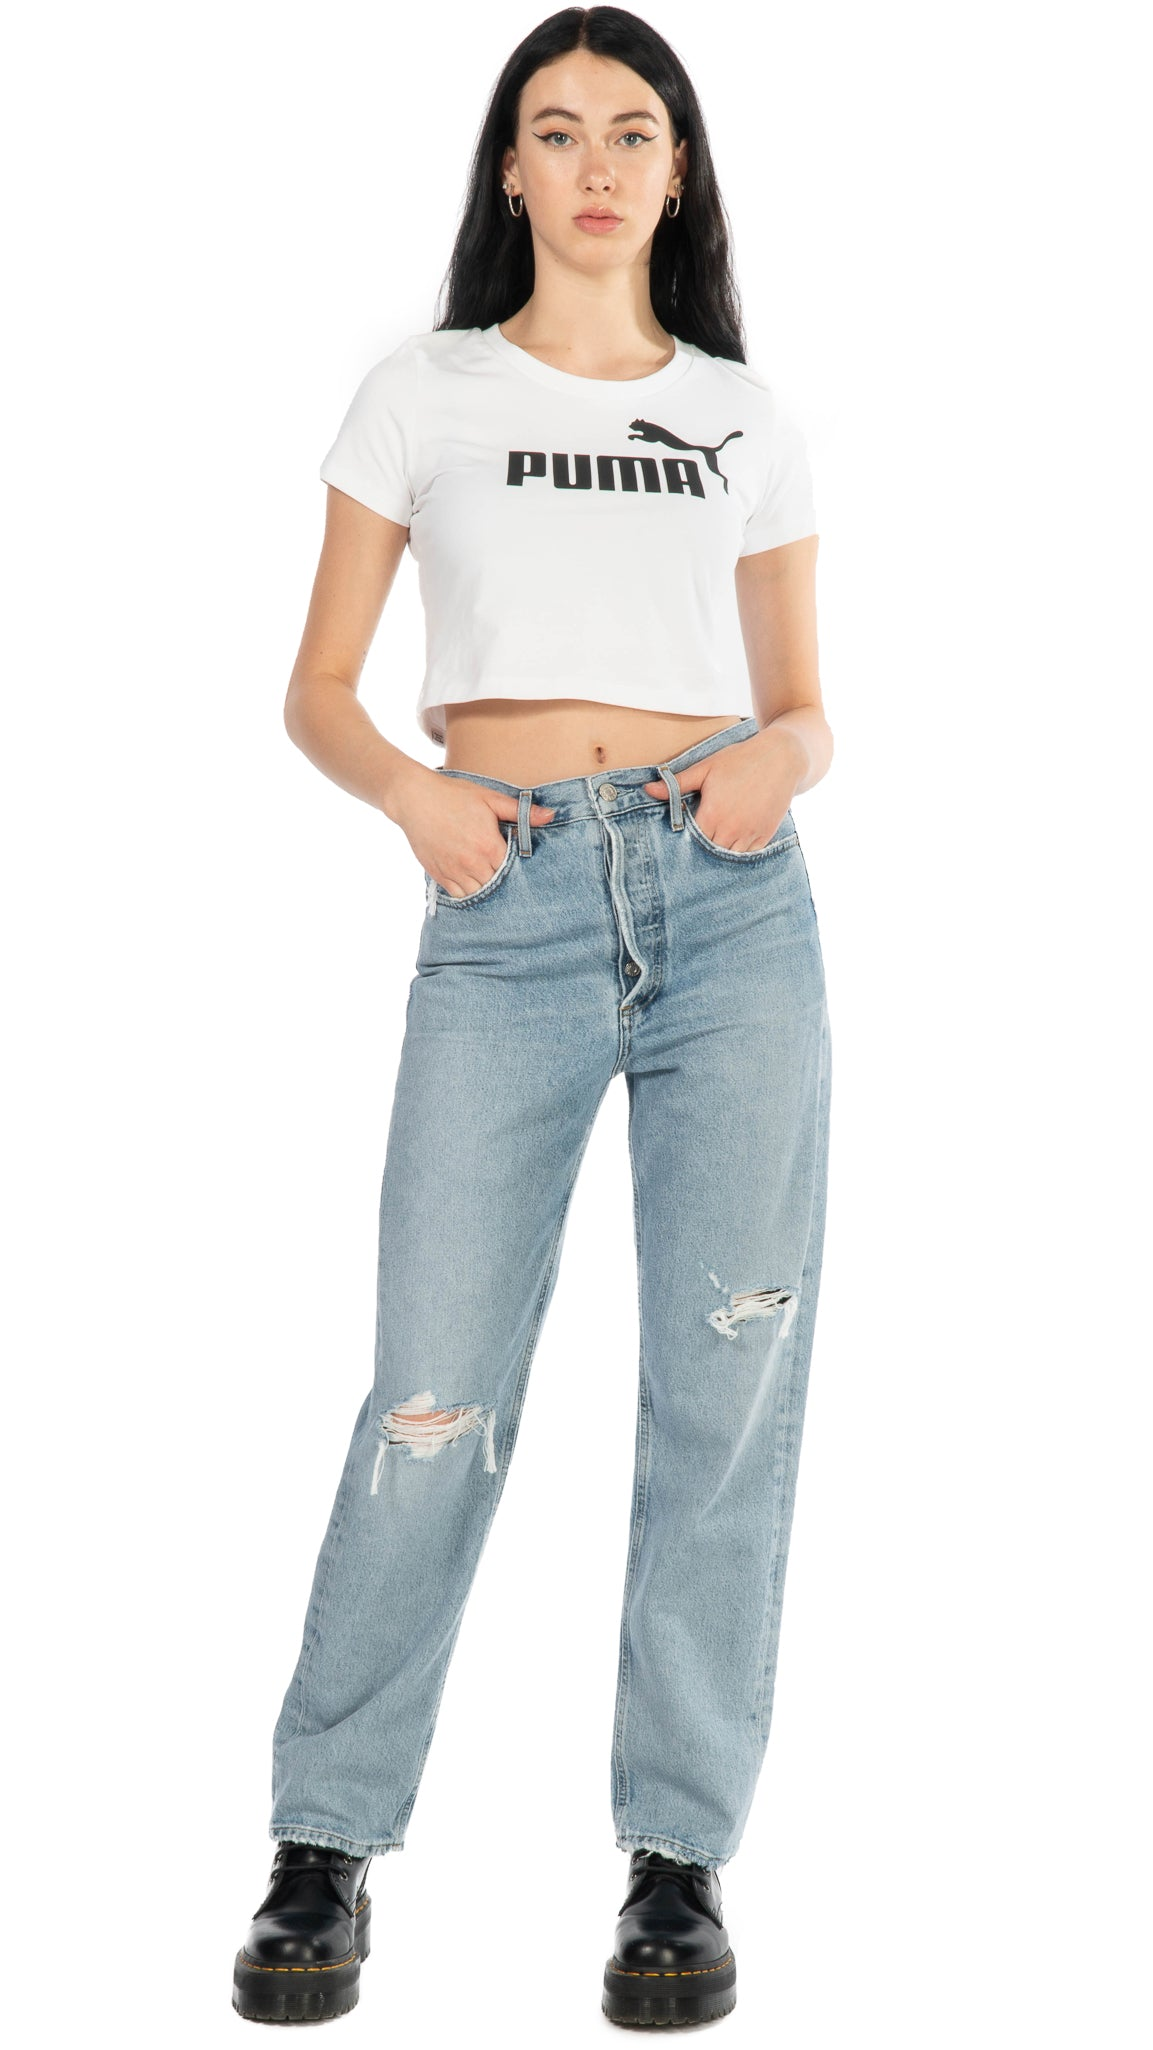 Puma, Fitted Tee, Clothing - Tops - Cropped - Editorial Boutique